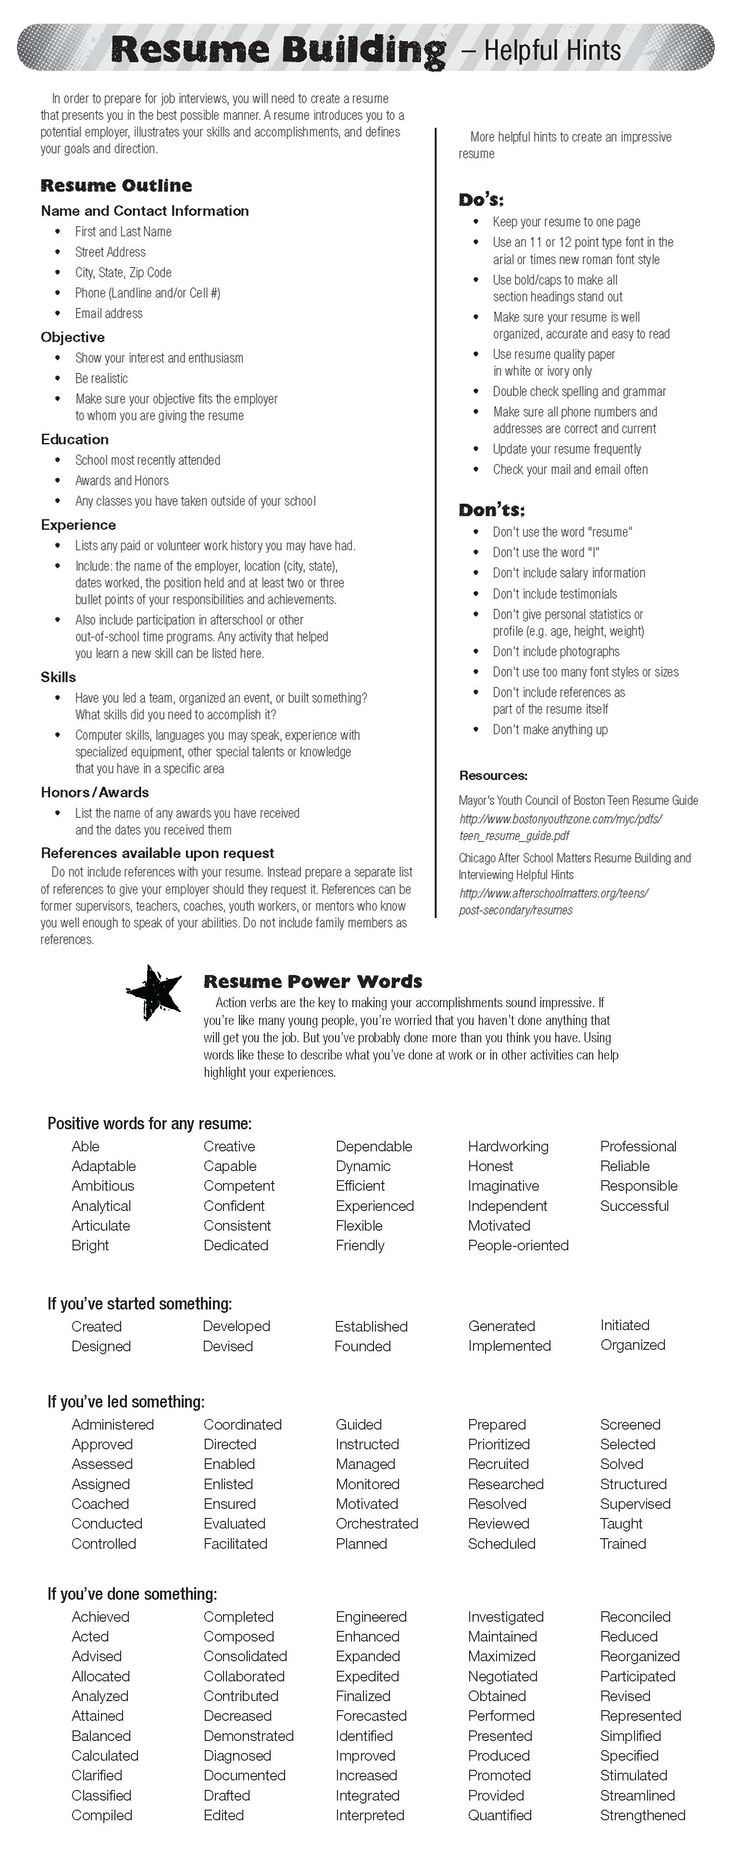 Opposenewapstandardsus  Fascinating  Ideas About Resume On Pinterest  Cv Format Resume Cv And  With Great  Ideas About Resume On Pinterest  Cv Format Resume Cv And Resume Templates With Lovely Resume Waitress Also Optimal Resume Acc In Addition Free Functional Resume Template And Resume For Retail Store As Well As Nicu Nurse Resume Additionally Mid Career Resume From Pinterestcom With Opposenewapstandardsus  Great  Ideas About Resume On Pinterest  Cv Format Resume Cv And  With Lovely  Ideas About Resume On Pinterest  Cv Format Resume Cv And Resume Templates And Fascinating Resume Waitress Also Optimal Resume Acc In Addition Free Functional Resume Template From Pinterestcom